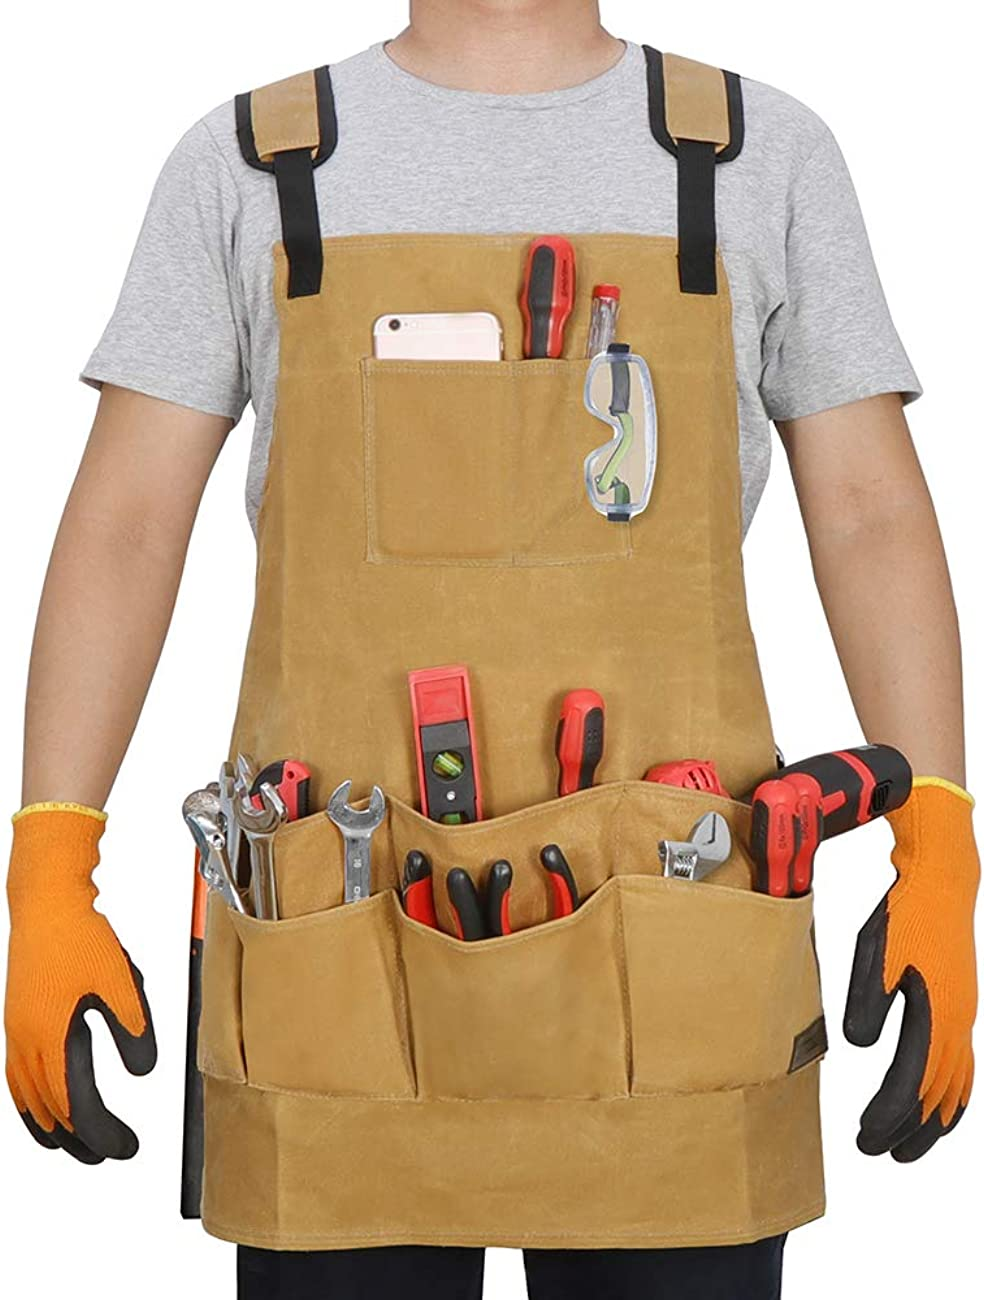 SAVWAYTOOL Work Apron with Deeper Apr Tucson Mall Utility Indianapolis Mall for Tools Pockets